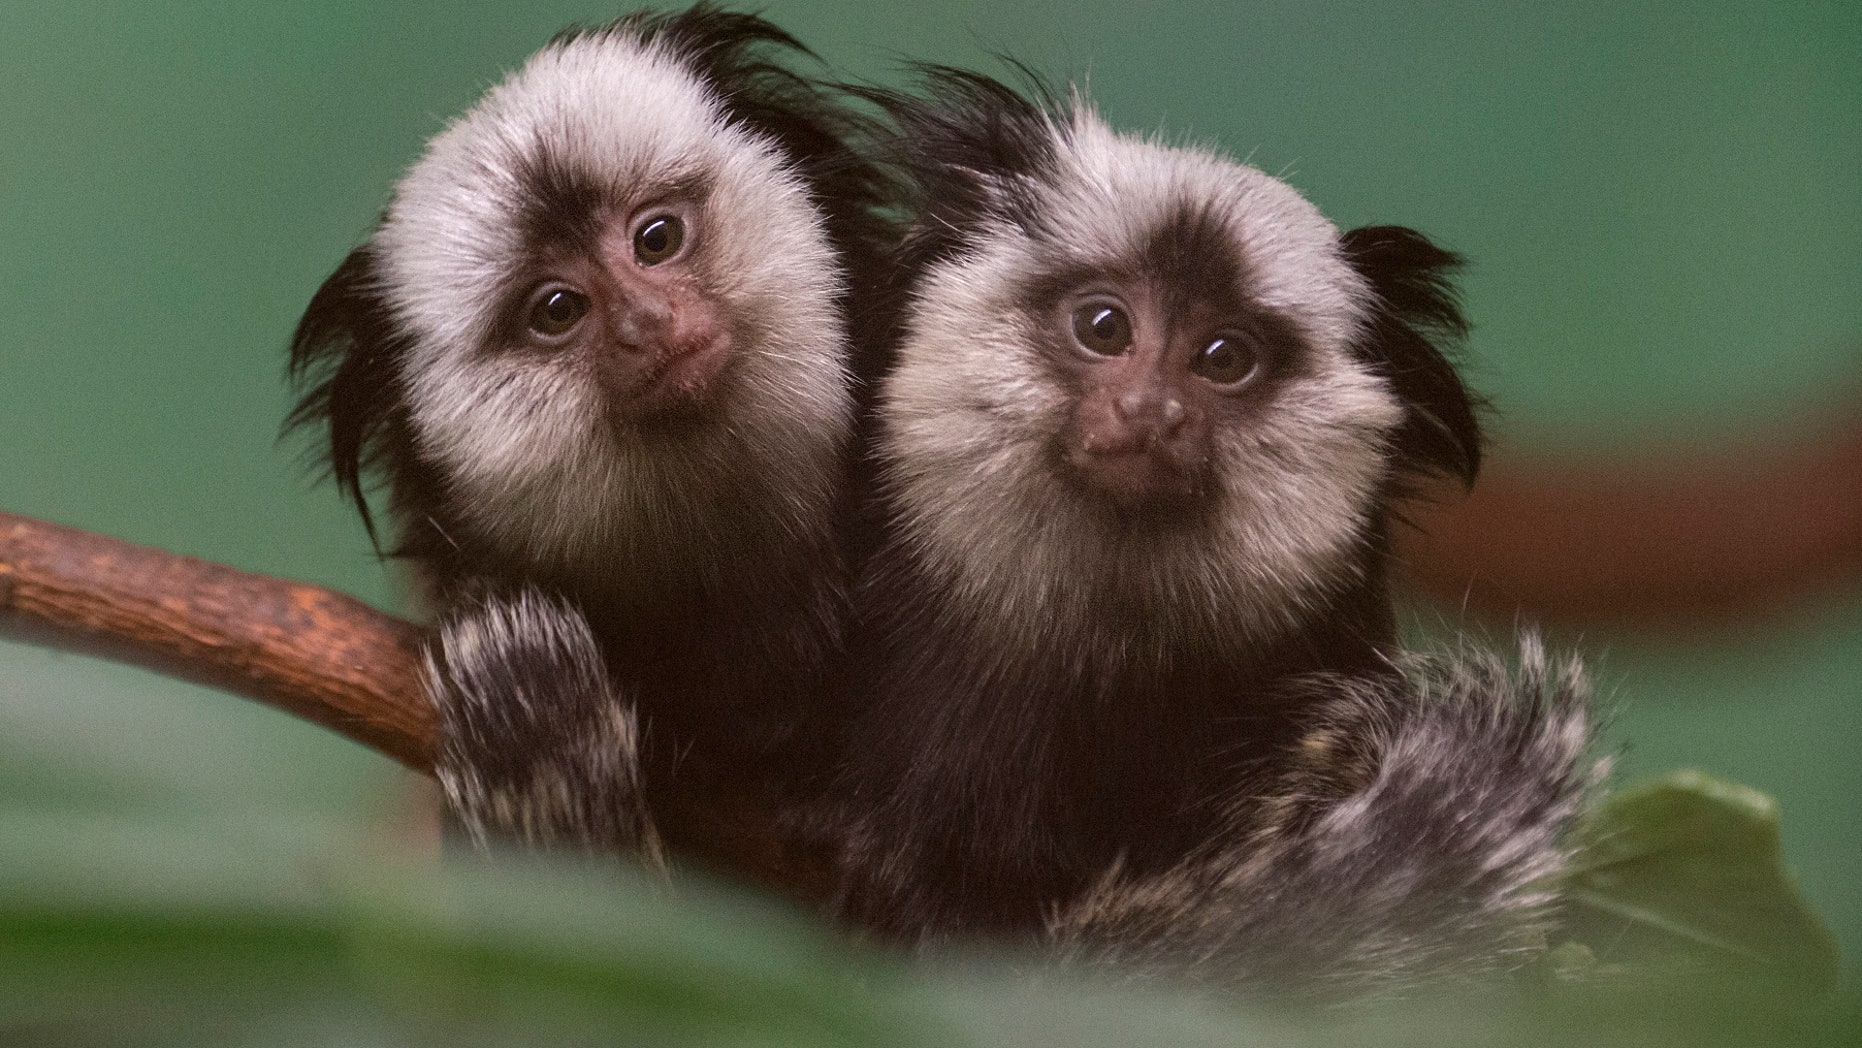 """In this Jan. 16, 2014 photo provided by the Wildlife Conservation Society, twin, juvenile Geoffroy's marmosets cling to a branch at the Prospect Park Zoo in New York. Also known as """"white-fronted marmosets,"""" Geoffroy's marmosets are native to small parts of the Atlantic rainforest in eastern Brazil. (AP Photo/Wildlife Conservation Society, Julie Larsen Maher)"""